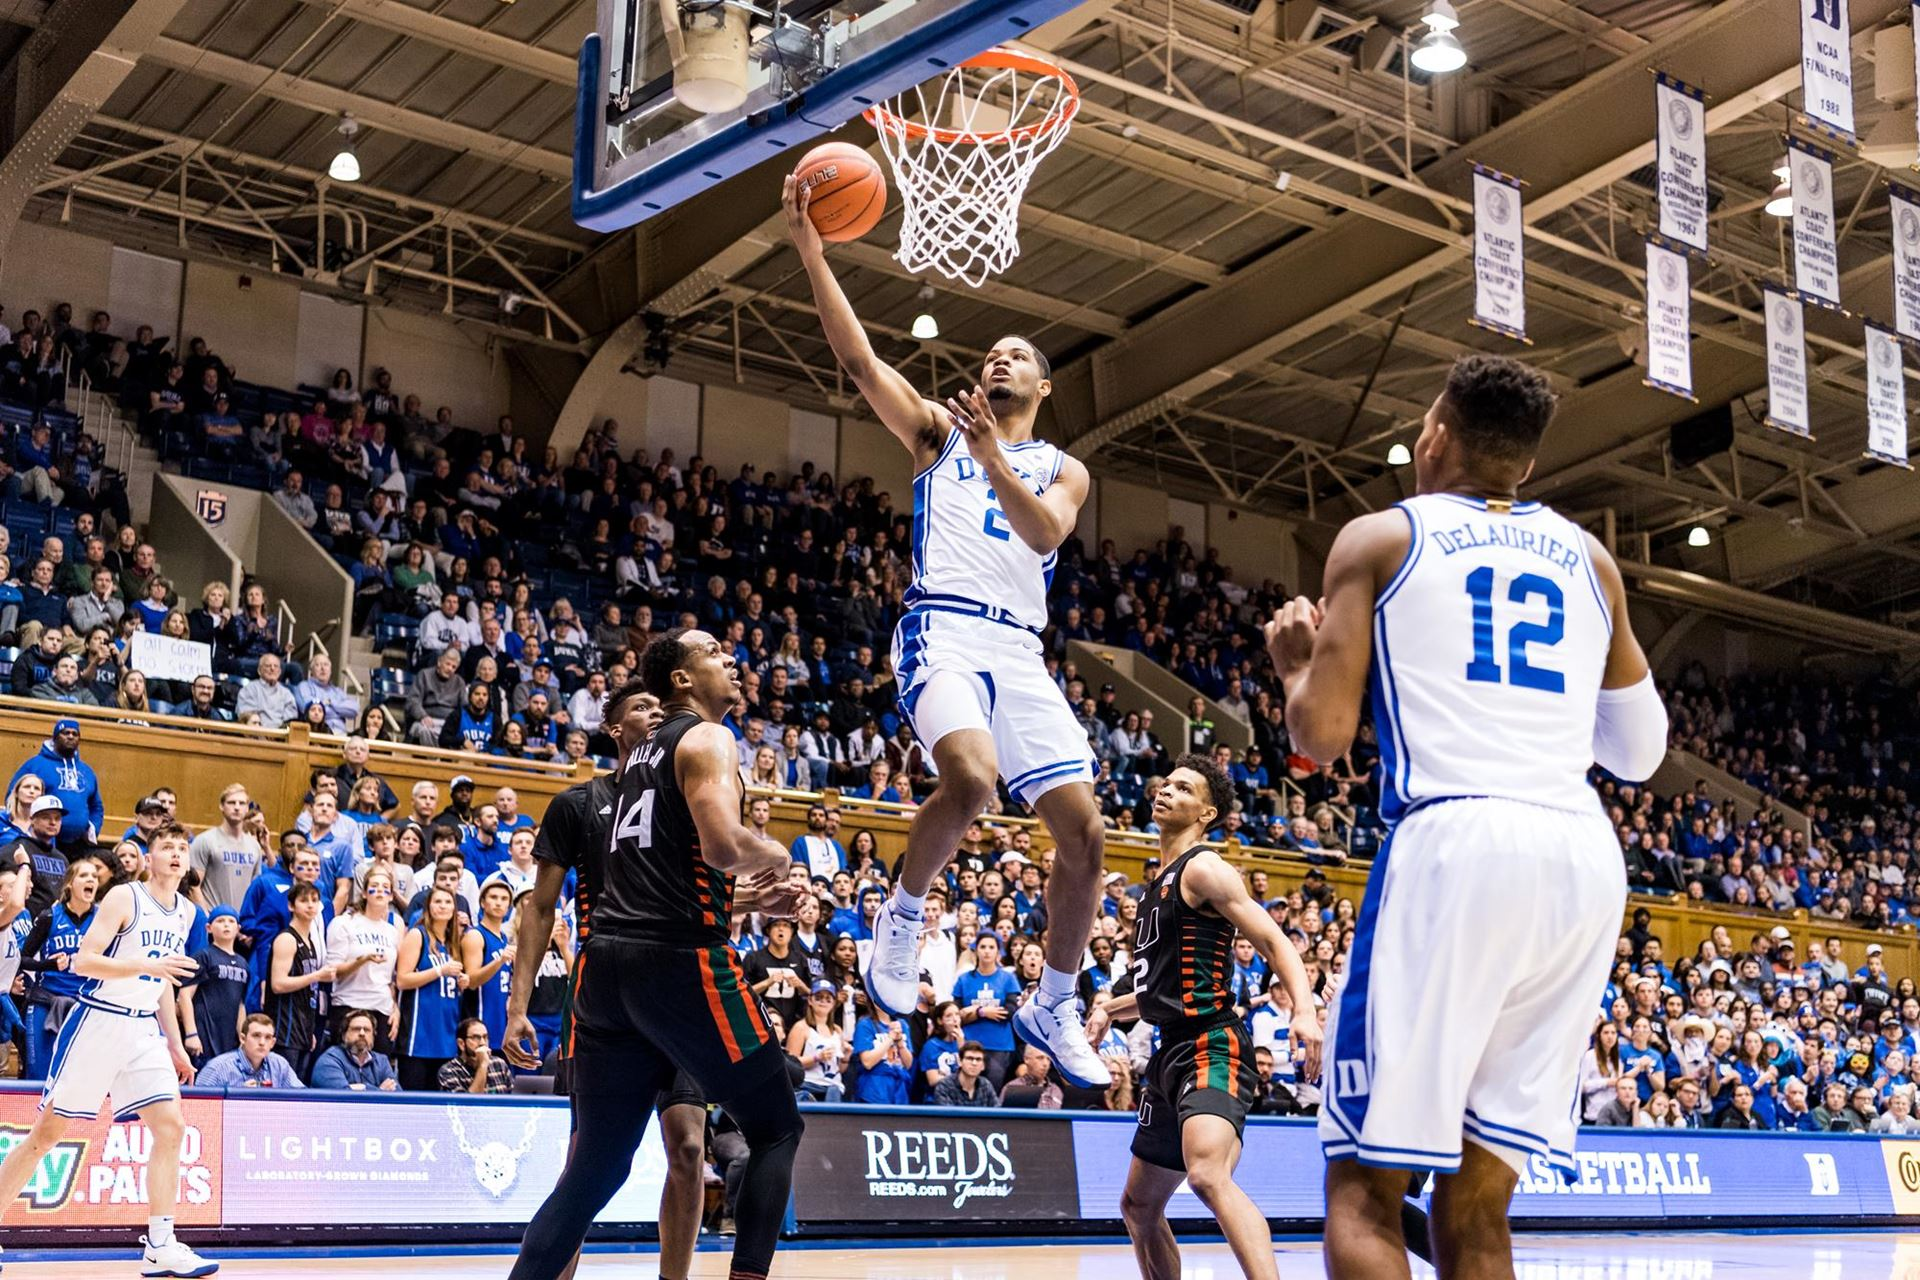 Duke Puts the Hurt on Miami Earning Season Sweep 89-59; Matthew Hurt Scores 22; Tre Jones with 6 Assists